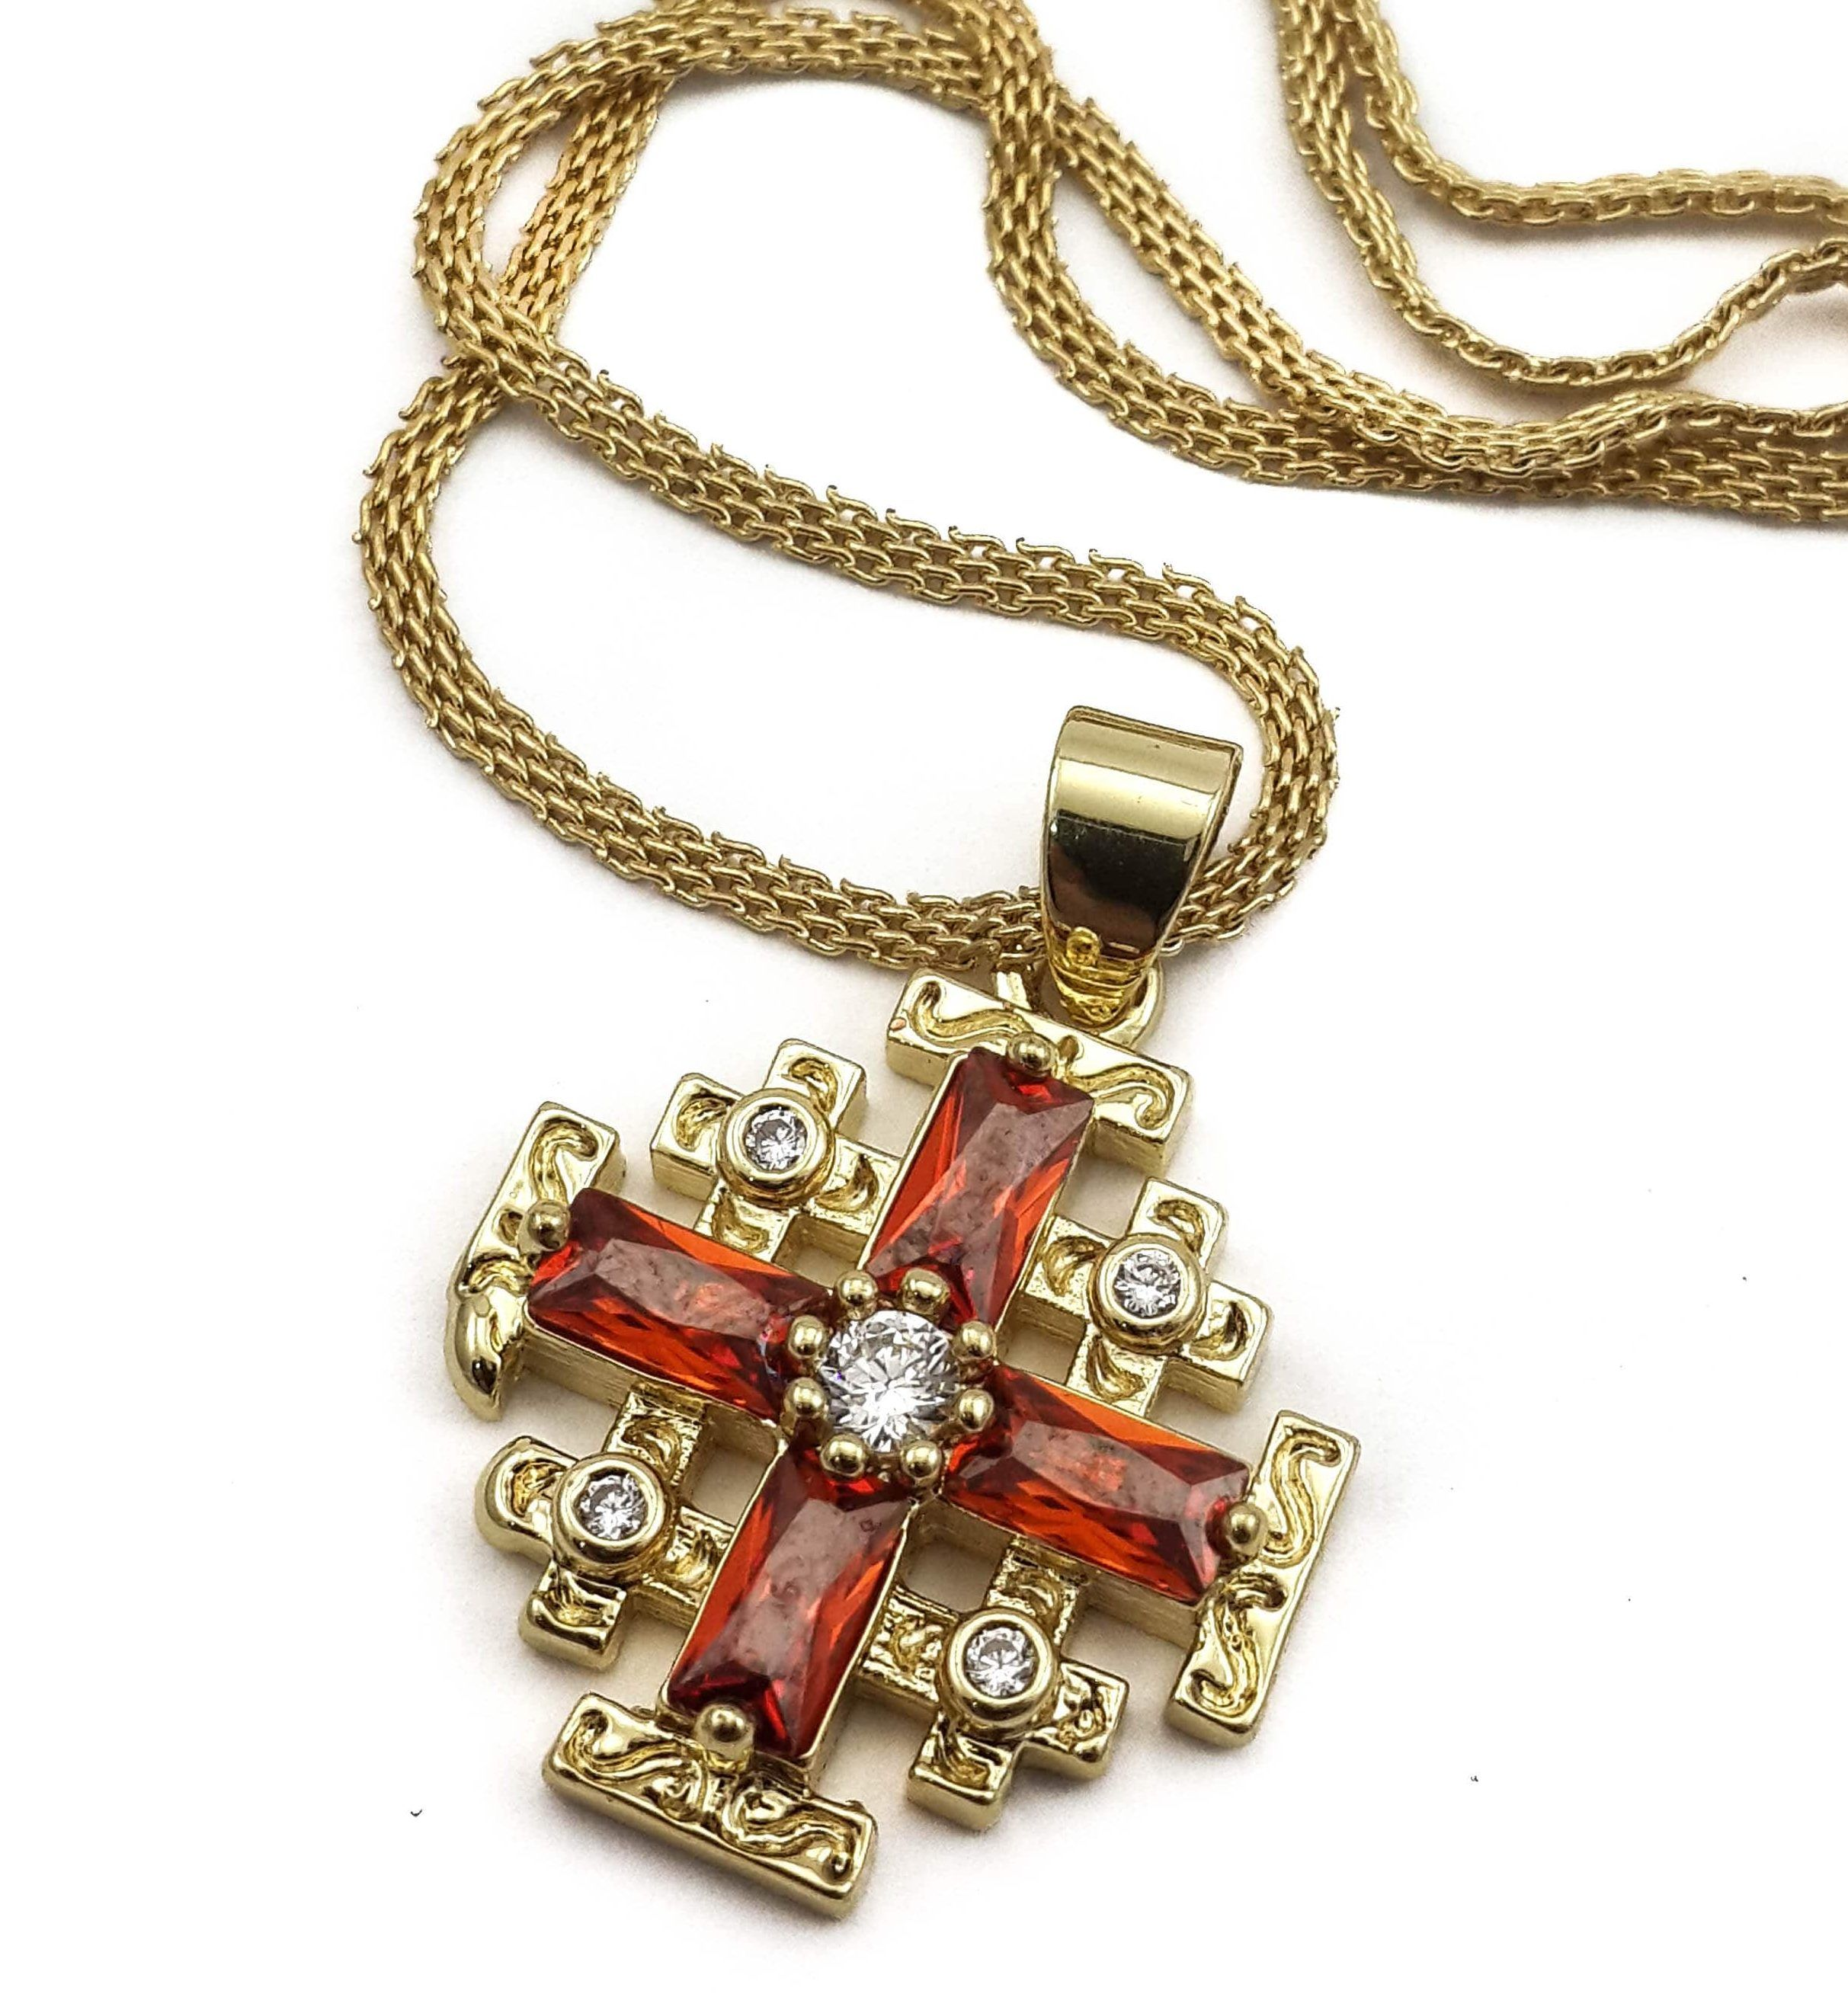 i products enlarged jewelry jerusalem cross reiss necklace pendant necklaces